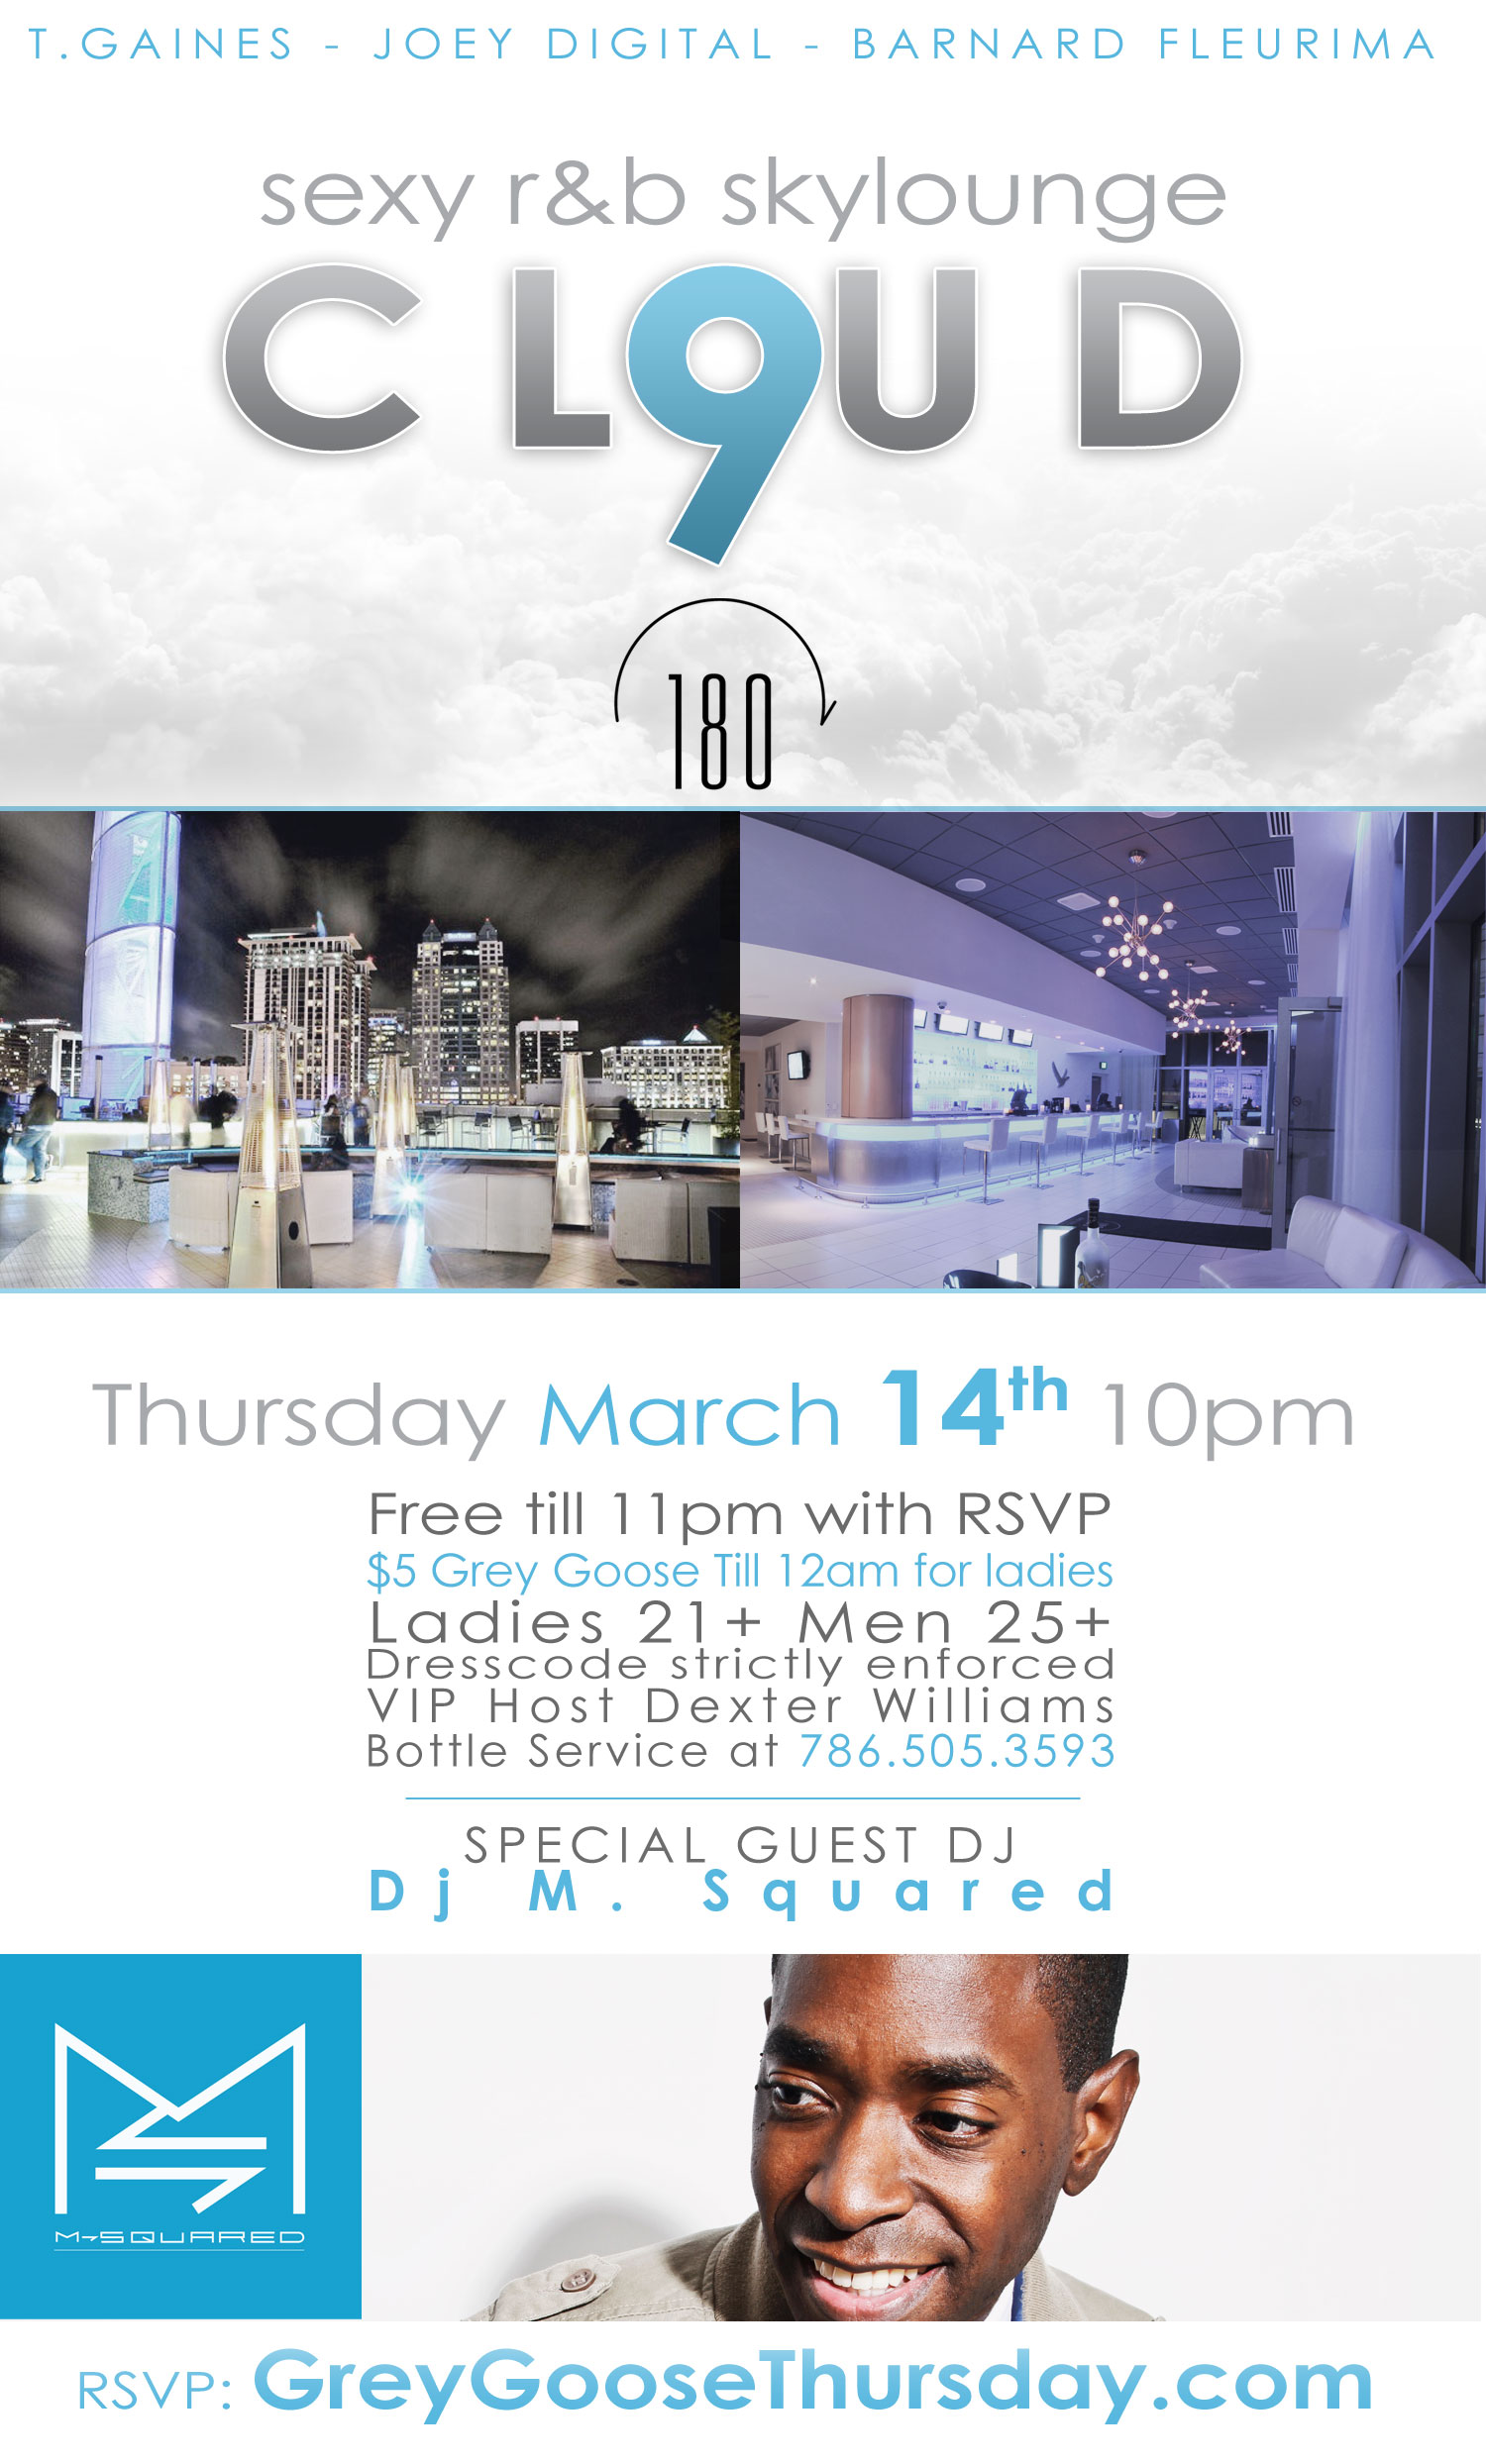 ORLANDO! Join Me This Thursday Night, doing a Special Guest DJ Set at the 180 Grey Goose Lounge at the Amway Center!  Big up Grey Goose Vodka - Tgaines Entertainment - Joey Digital & Barnard Fleurima -Design the Mood-